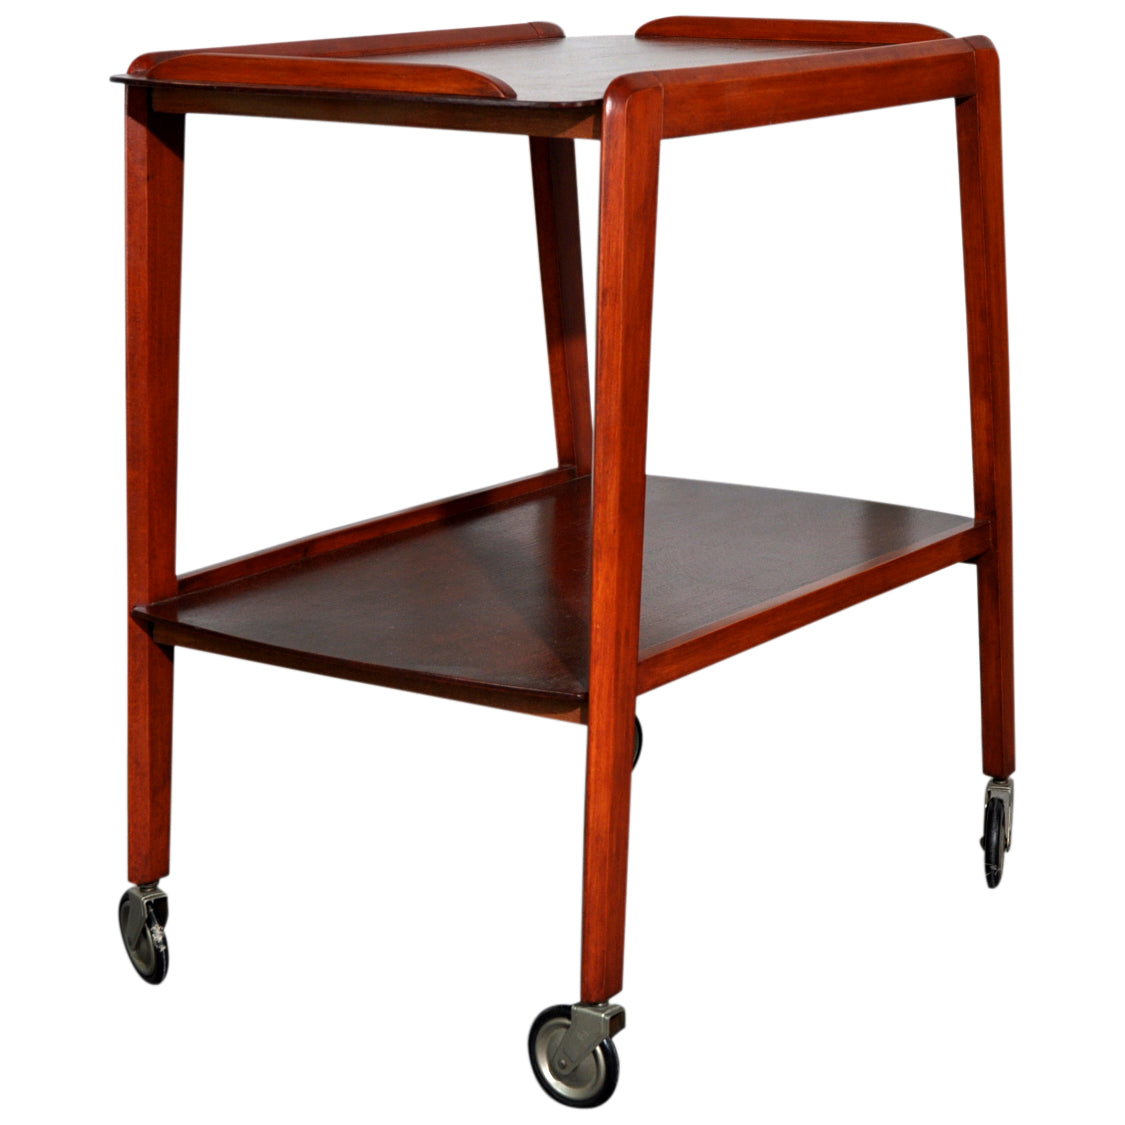 RESERVED. 1960s Remploy bar cart and serving trolley